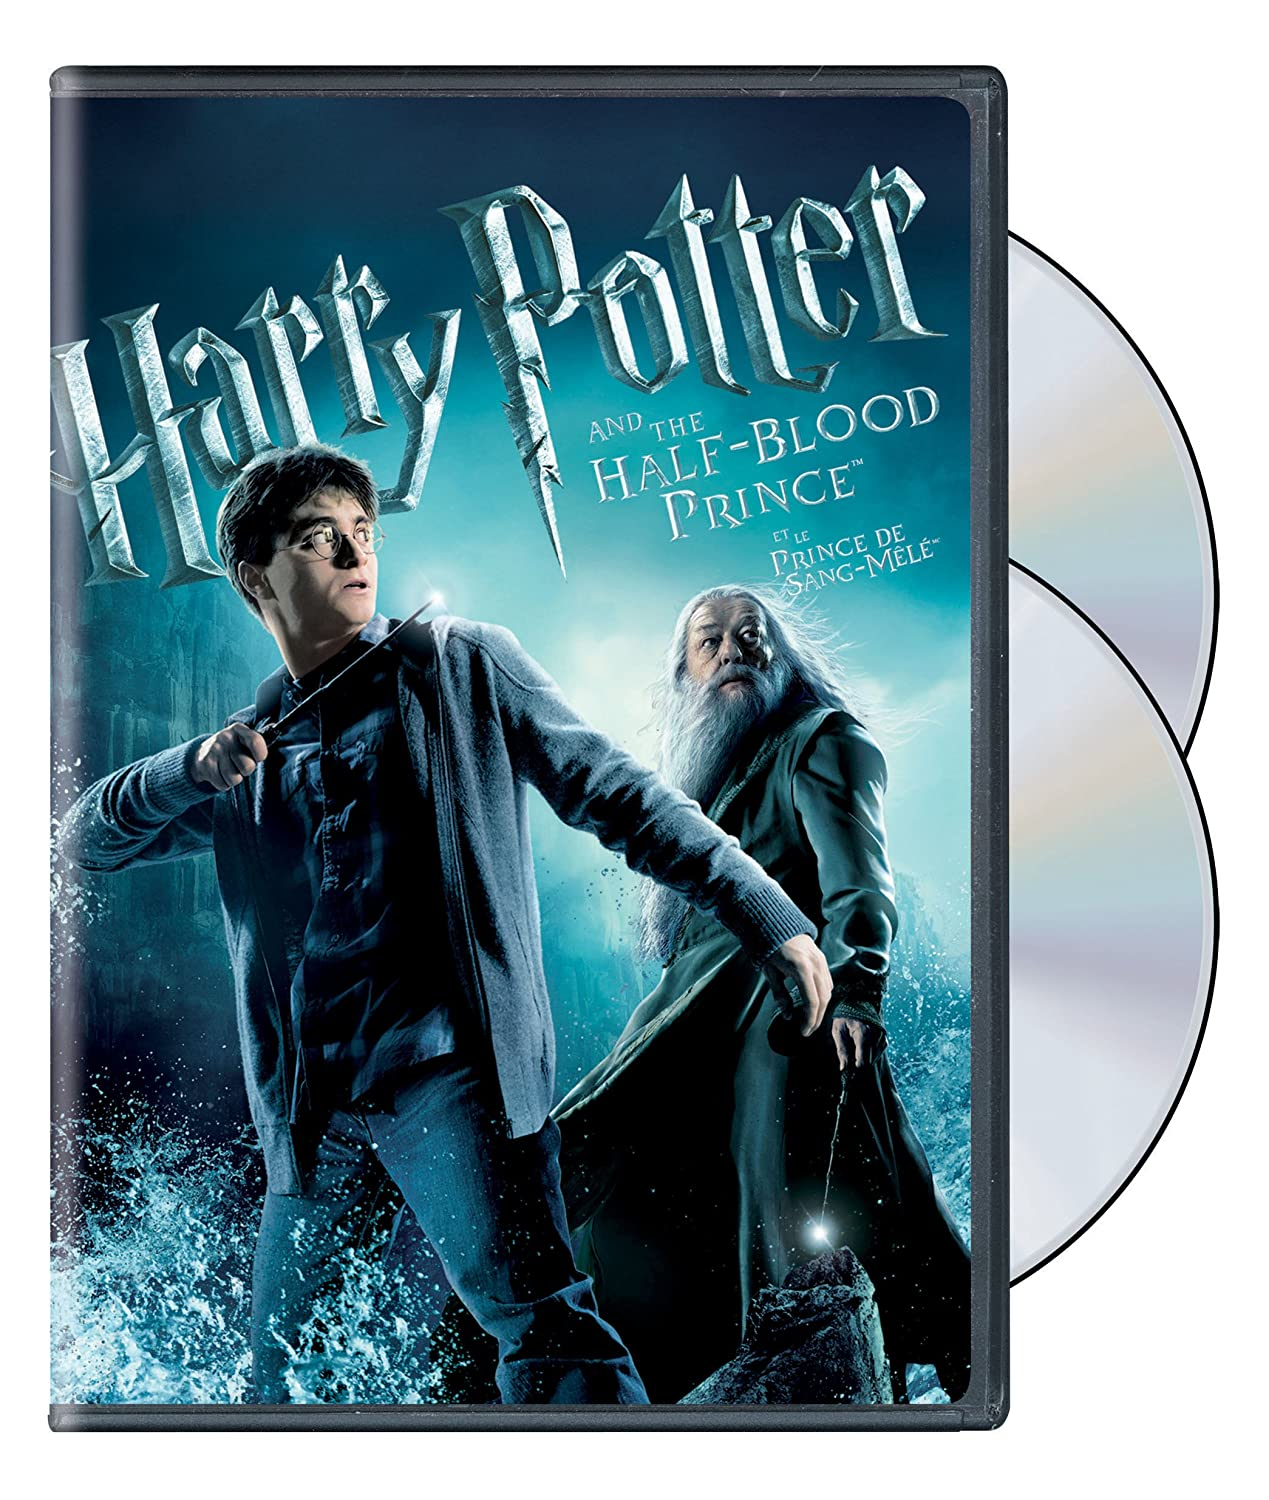 Harry Potter and the Half-Blood Prince (Harry Potter et le prince de sang mêlé) (2-Disc Widescreen Edition) Daniel Radcliffe Emma Watson Rupert Grint Michael Gambon